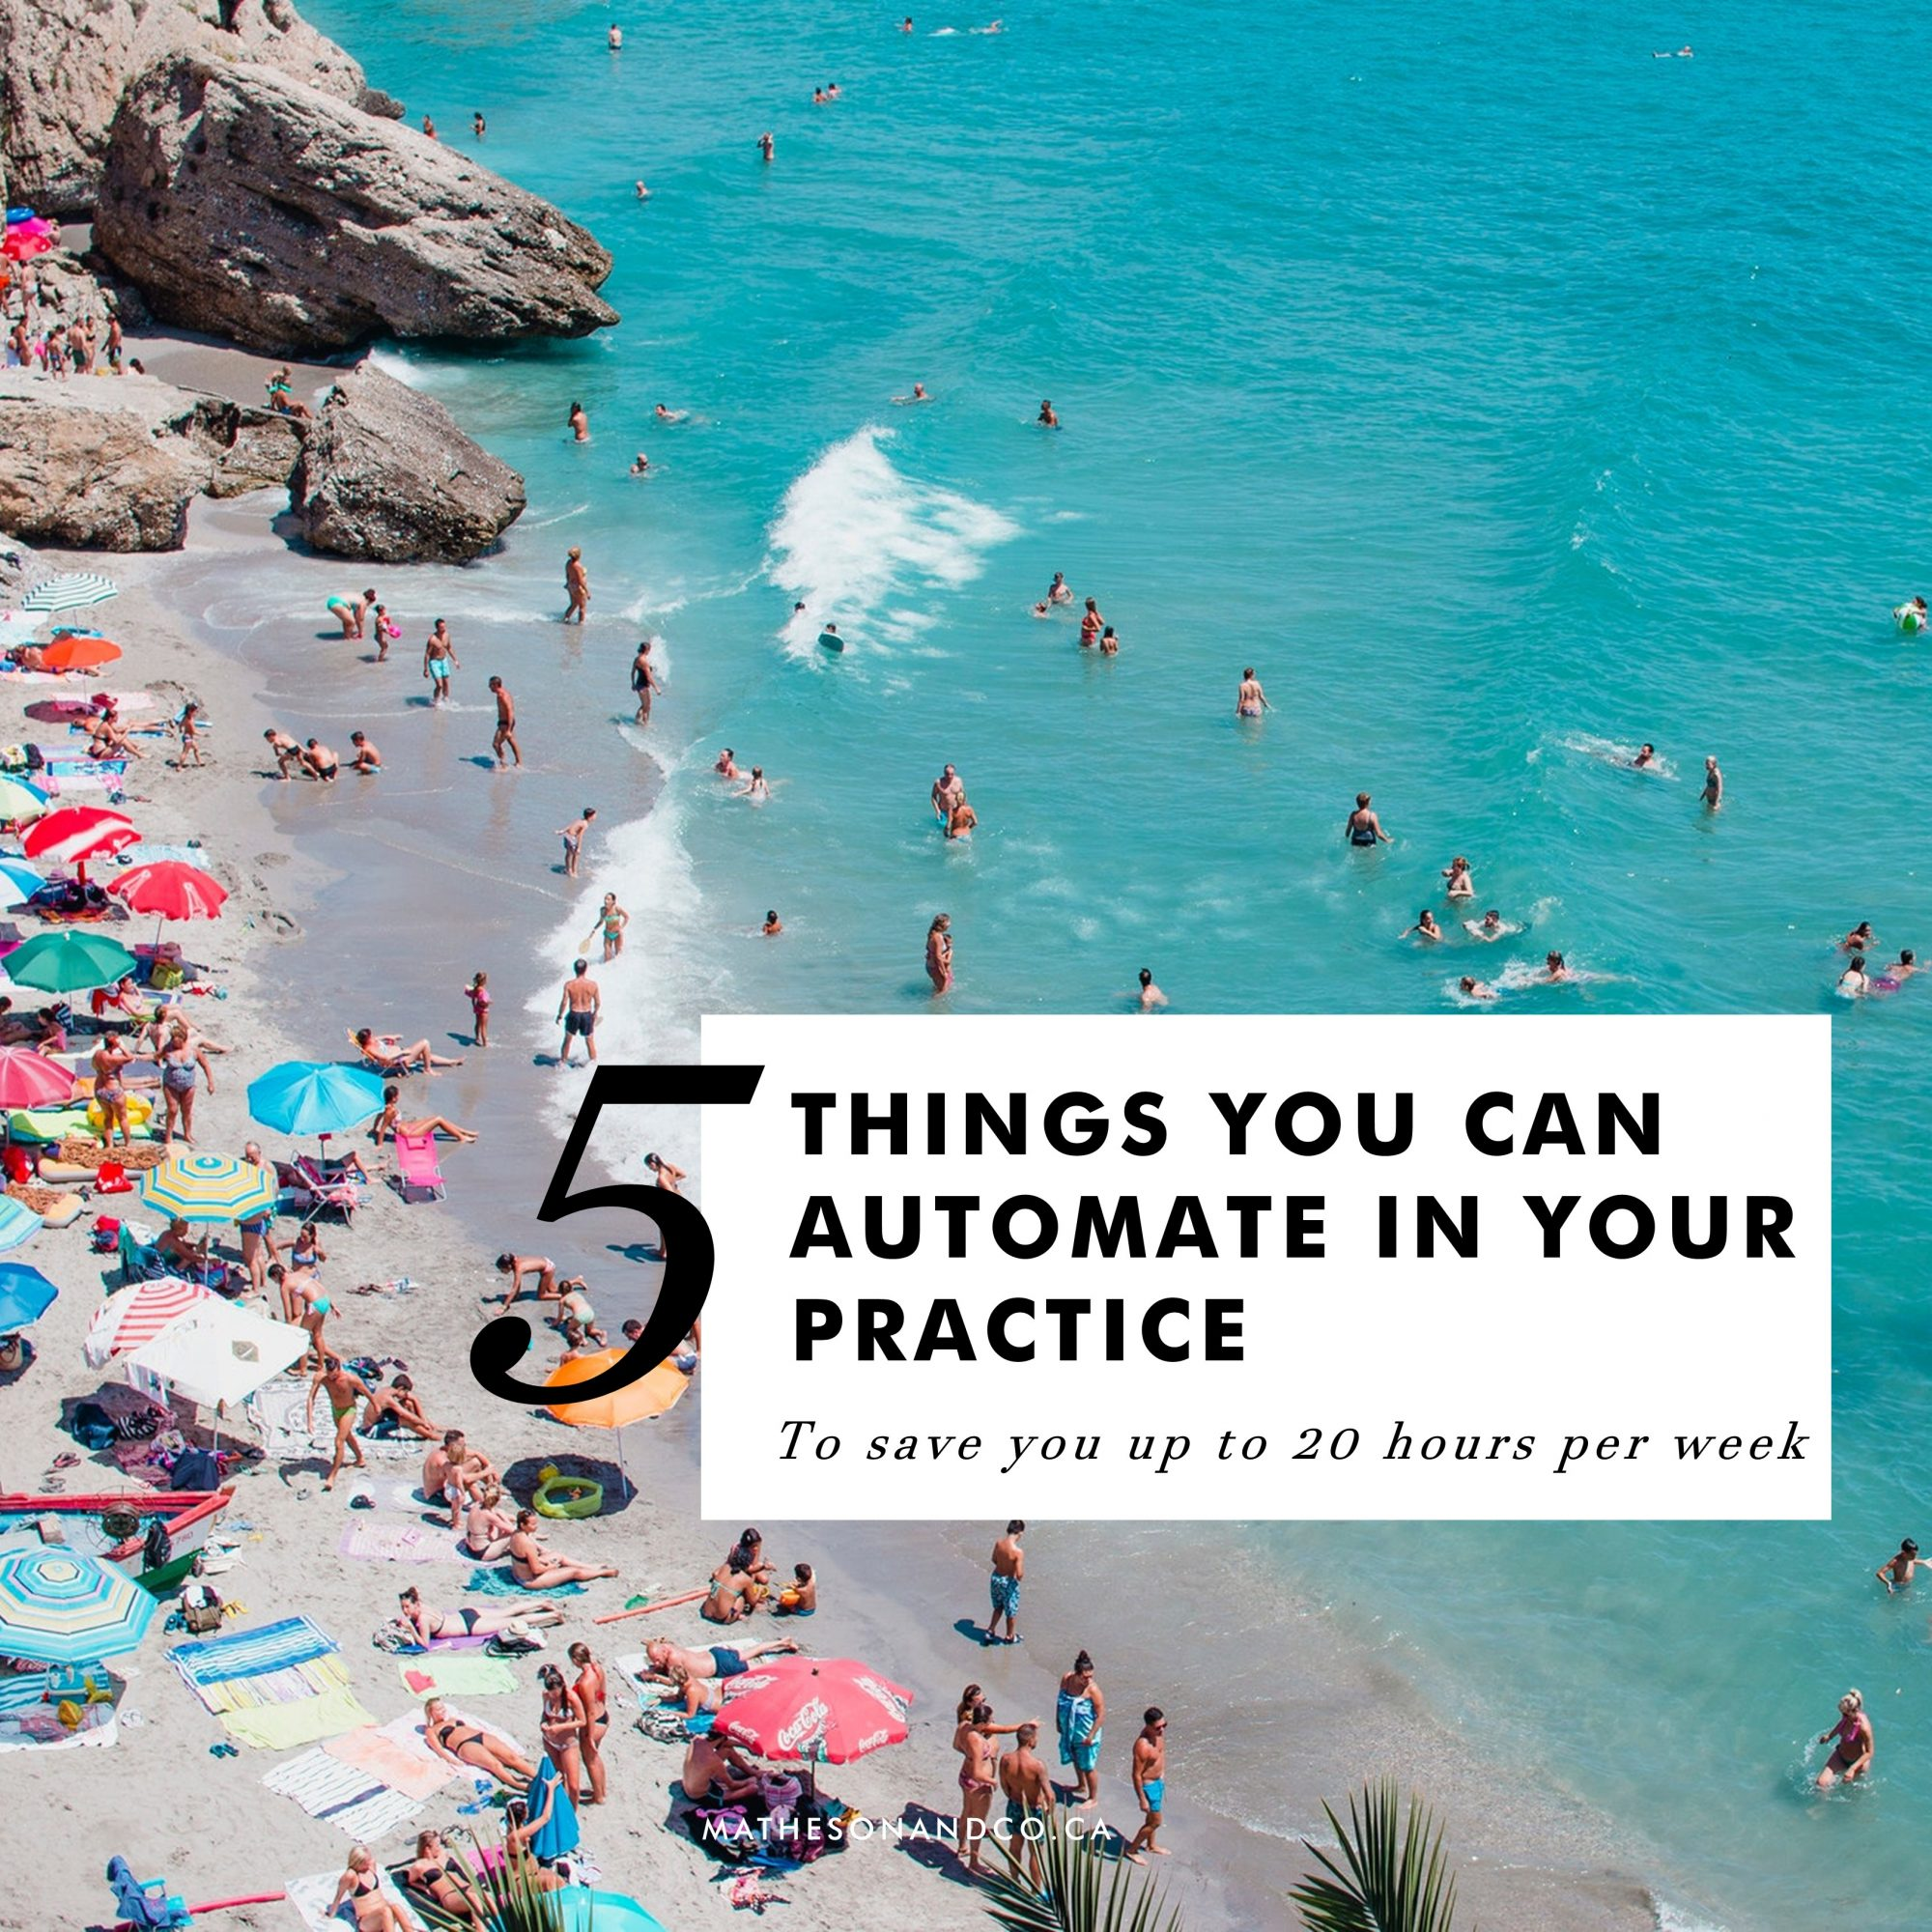 5 things you can automate in your practice